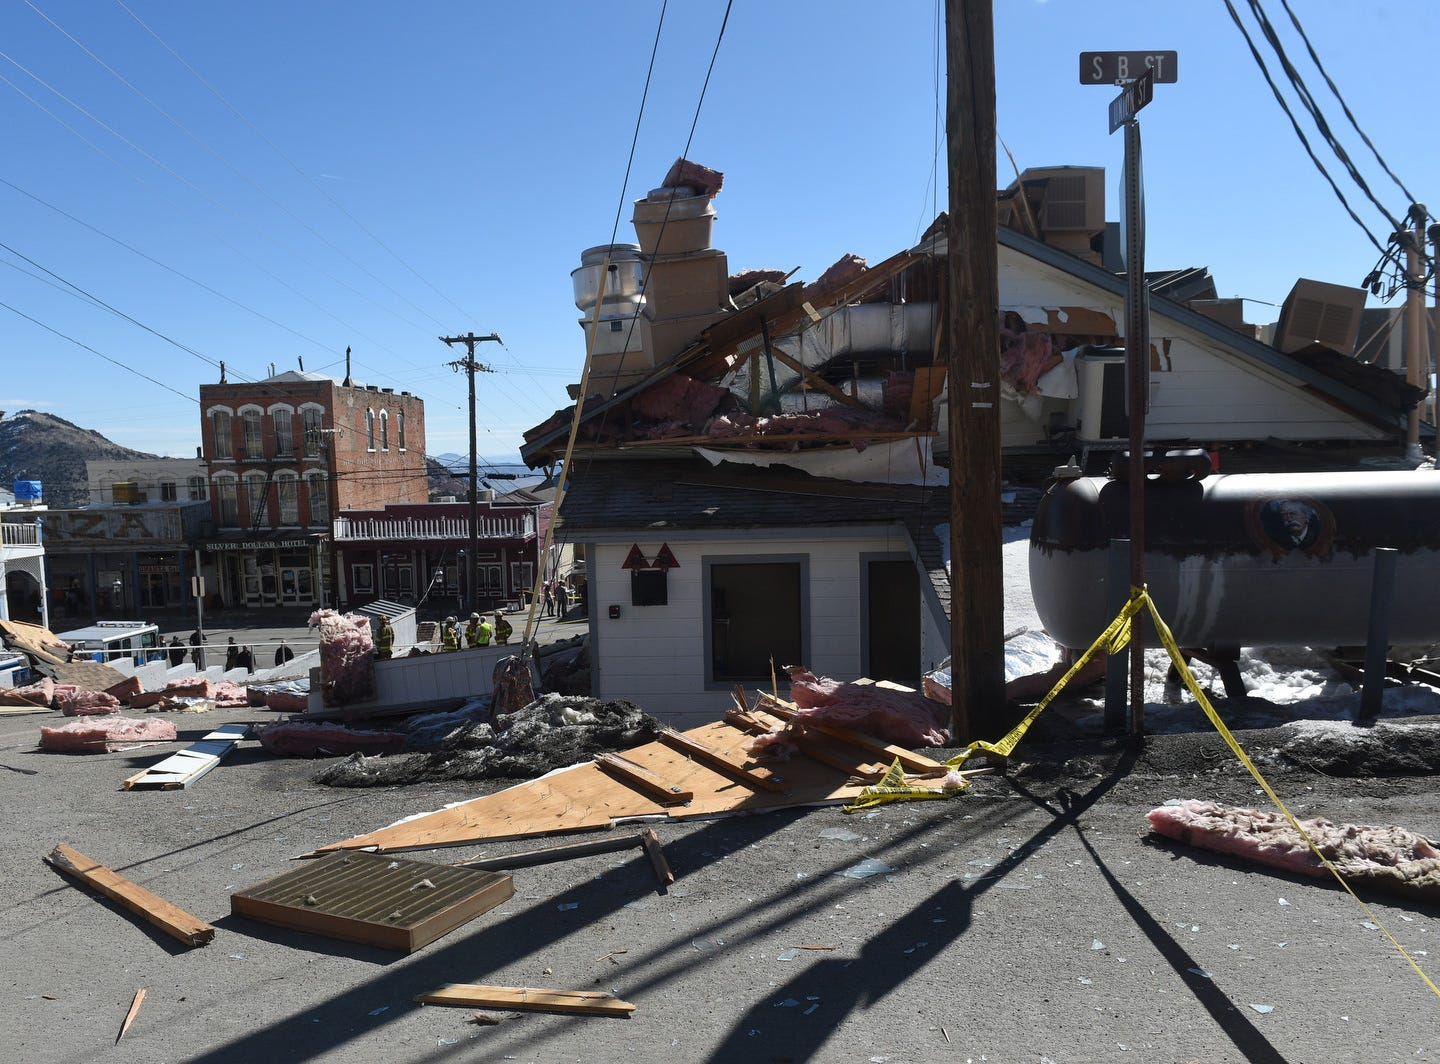 An explosion damages the historic Delta Saloon in Virginia City on March 12, 2019.